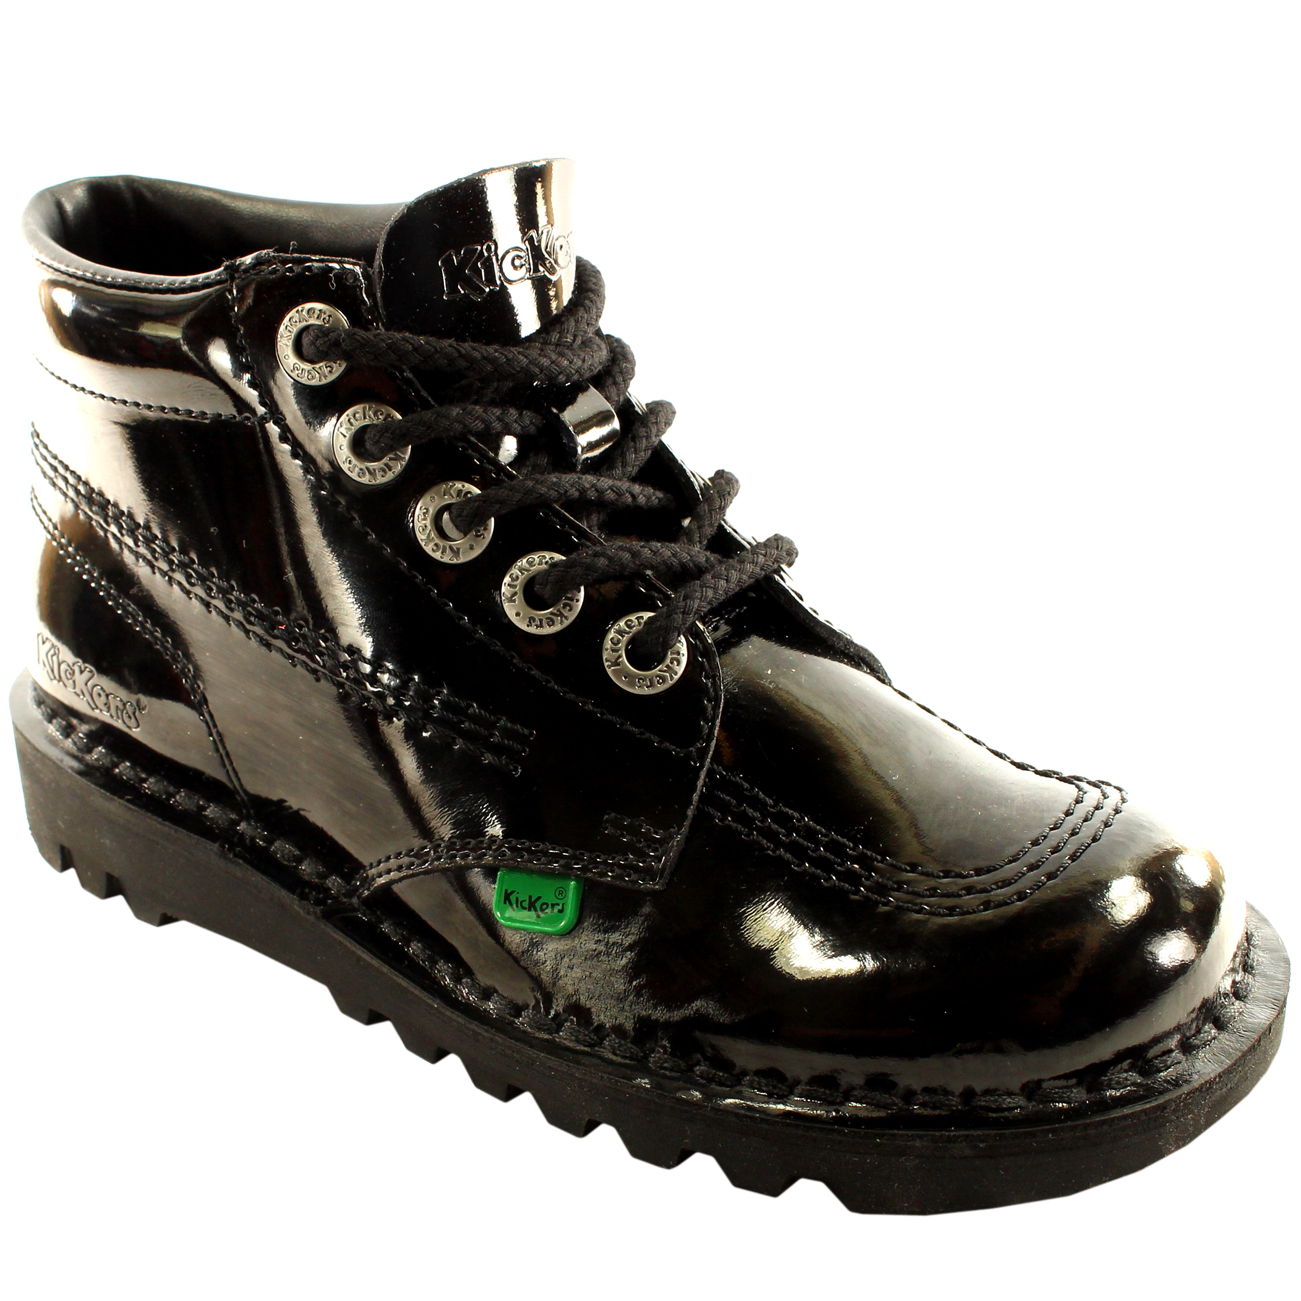 Unisex Kids Youth Kickers Kick Hi Black Patent Back To School Shoes All Sizes